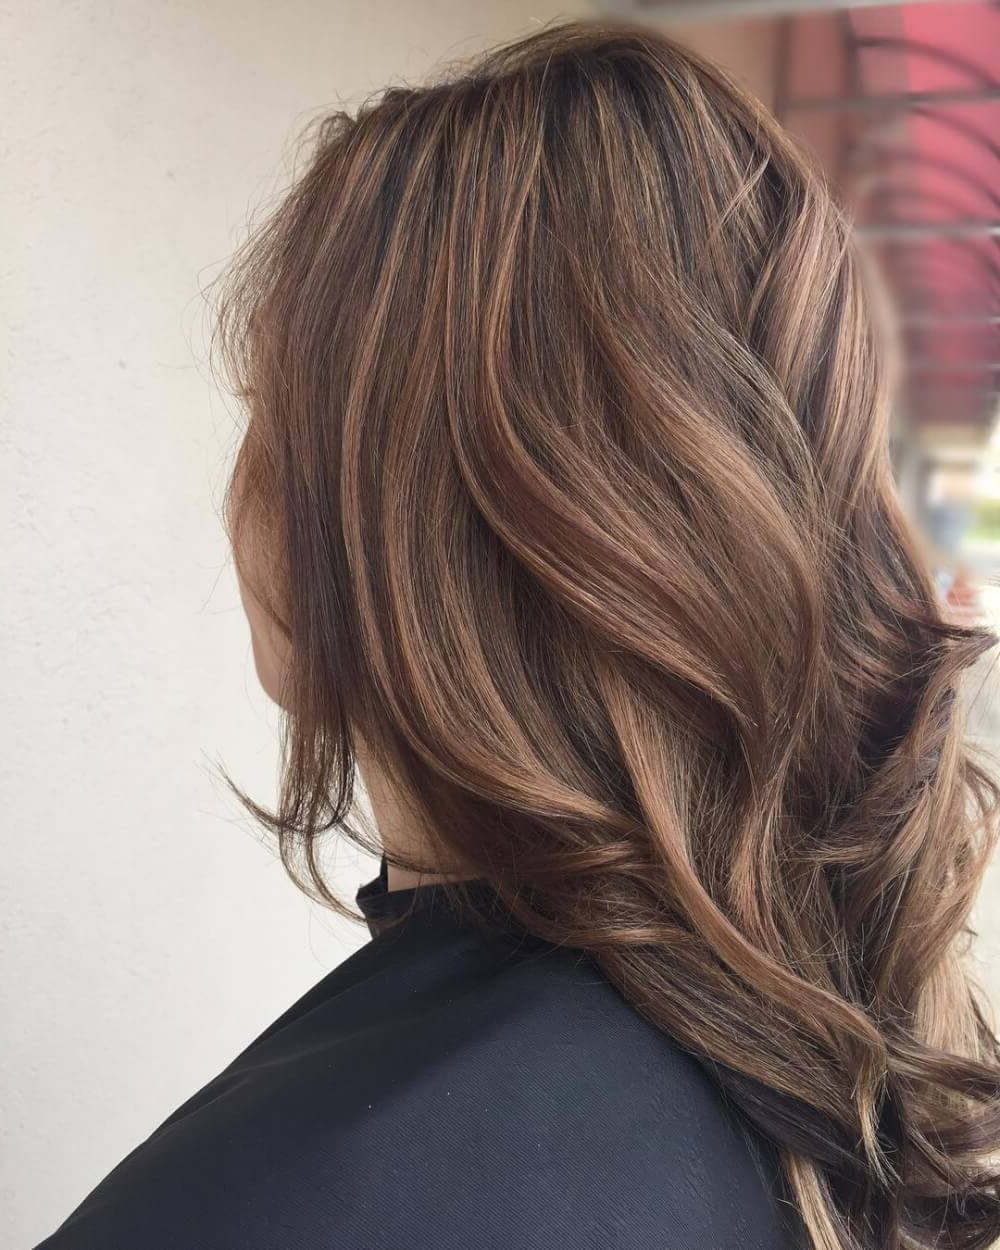 Widely Used Warm Brown Hairstyles With Feathered Layers With Regard To 36 Light Brown Hair Colors That Are Blowing Up In 2019 (Gallery 19 of 20)